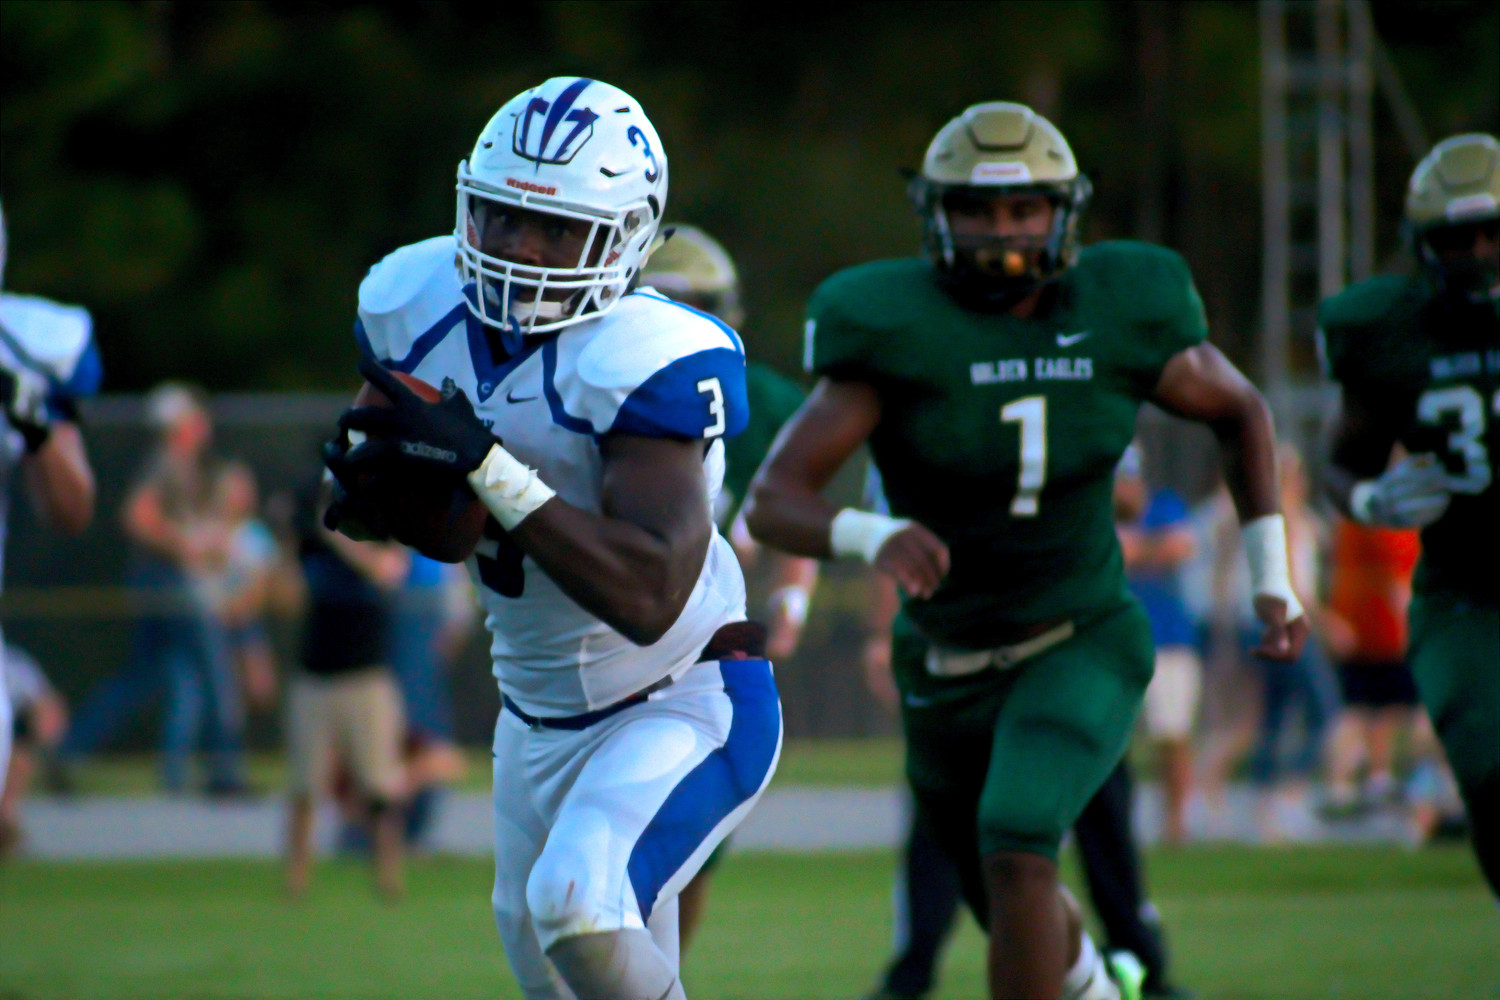 Clay running back Colin Wilson, now at Louisville,  caught a 53 yard scoring  pass ahead of Wake Forest commit Ryan Smenda to score the first touchdown of the game. Wilson scored both Clay touchdowns.